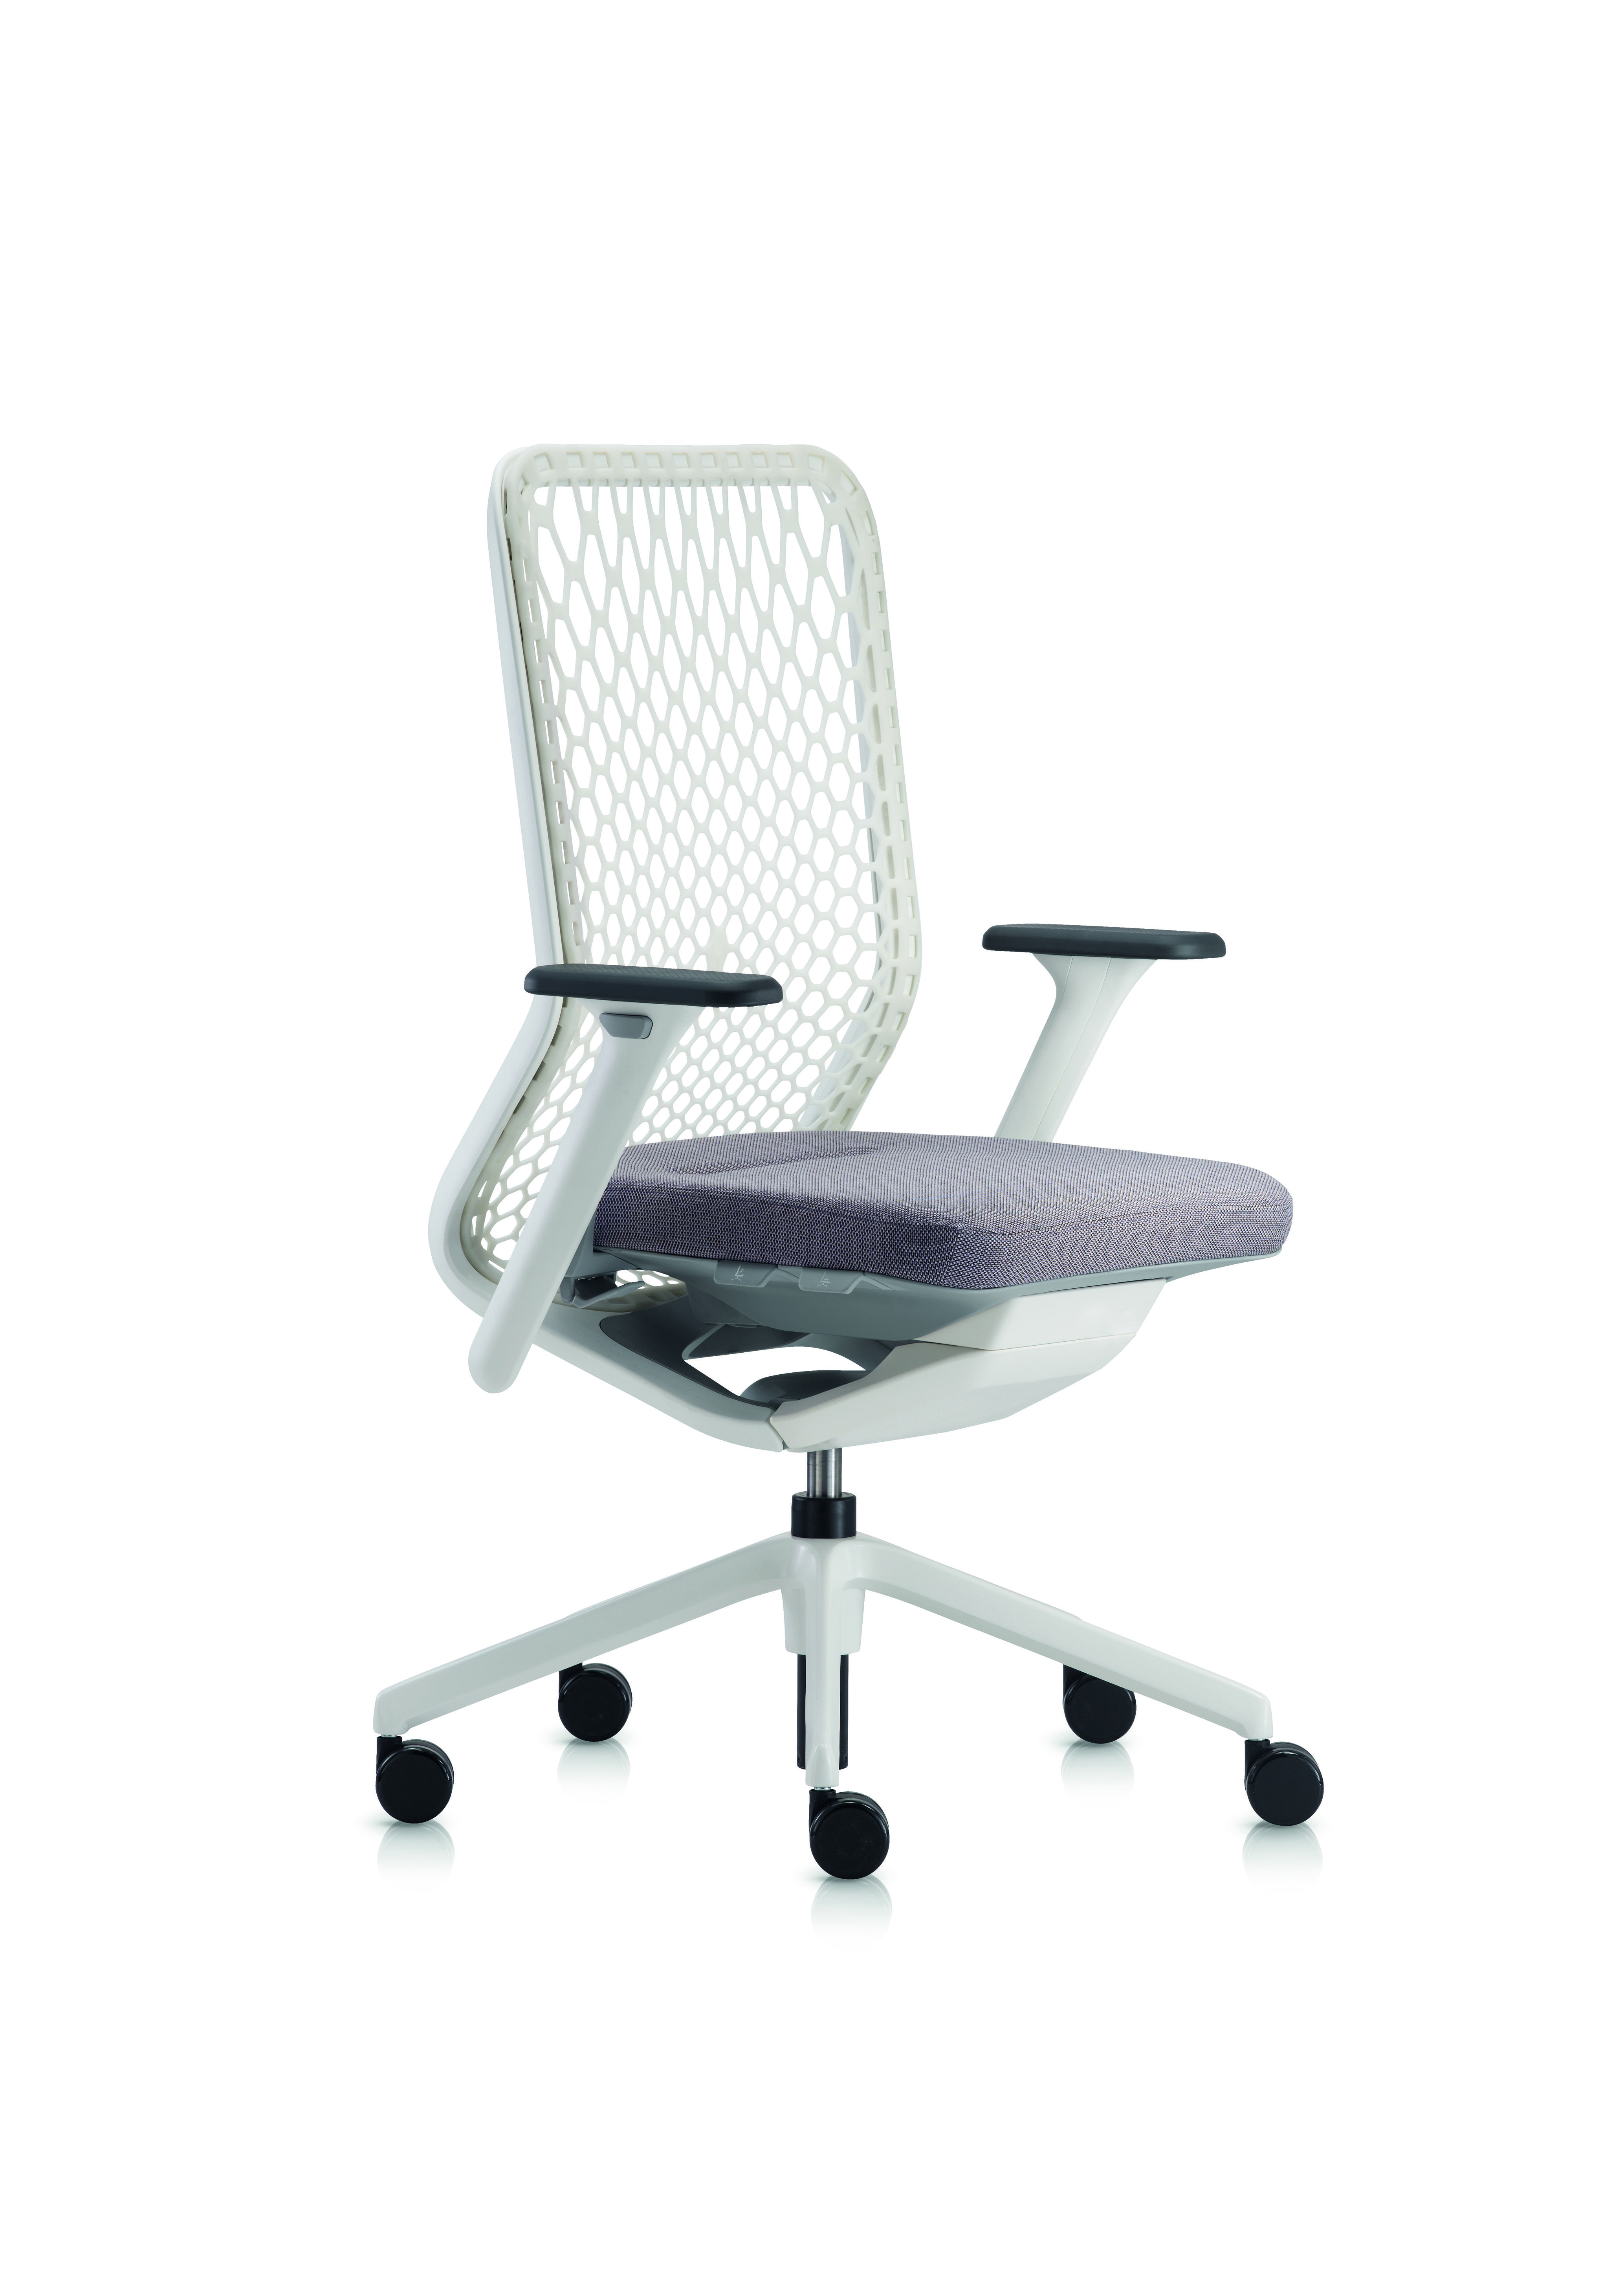 Eam Chair Office Chair Team From Sitag Designed By 2do Design Www